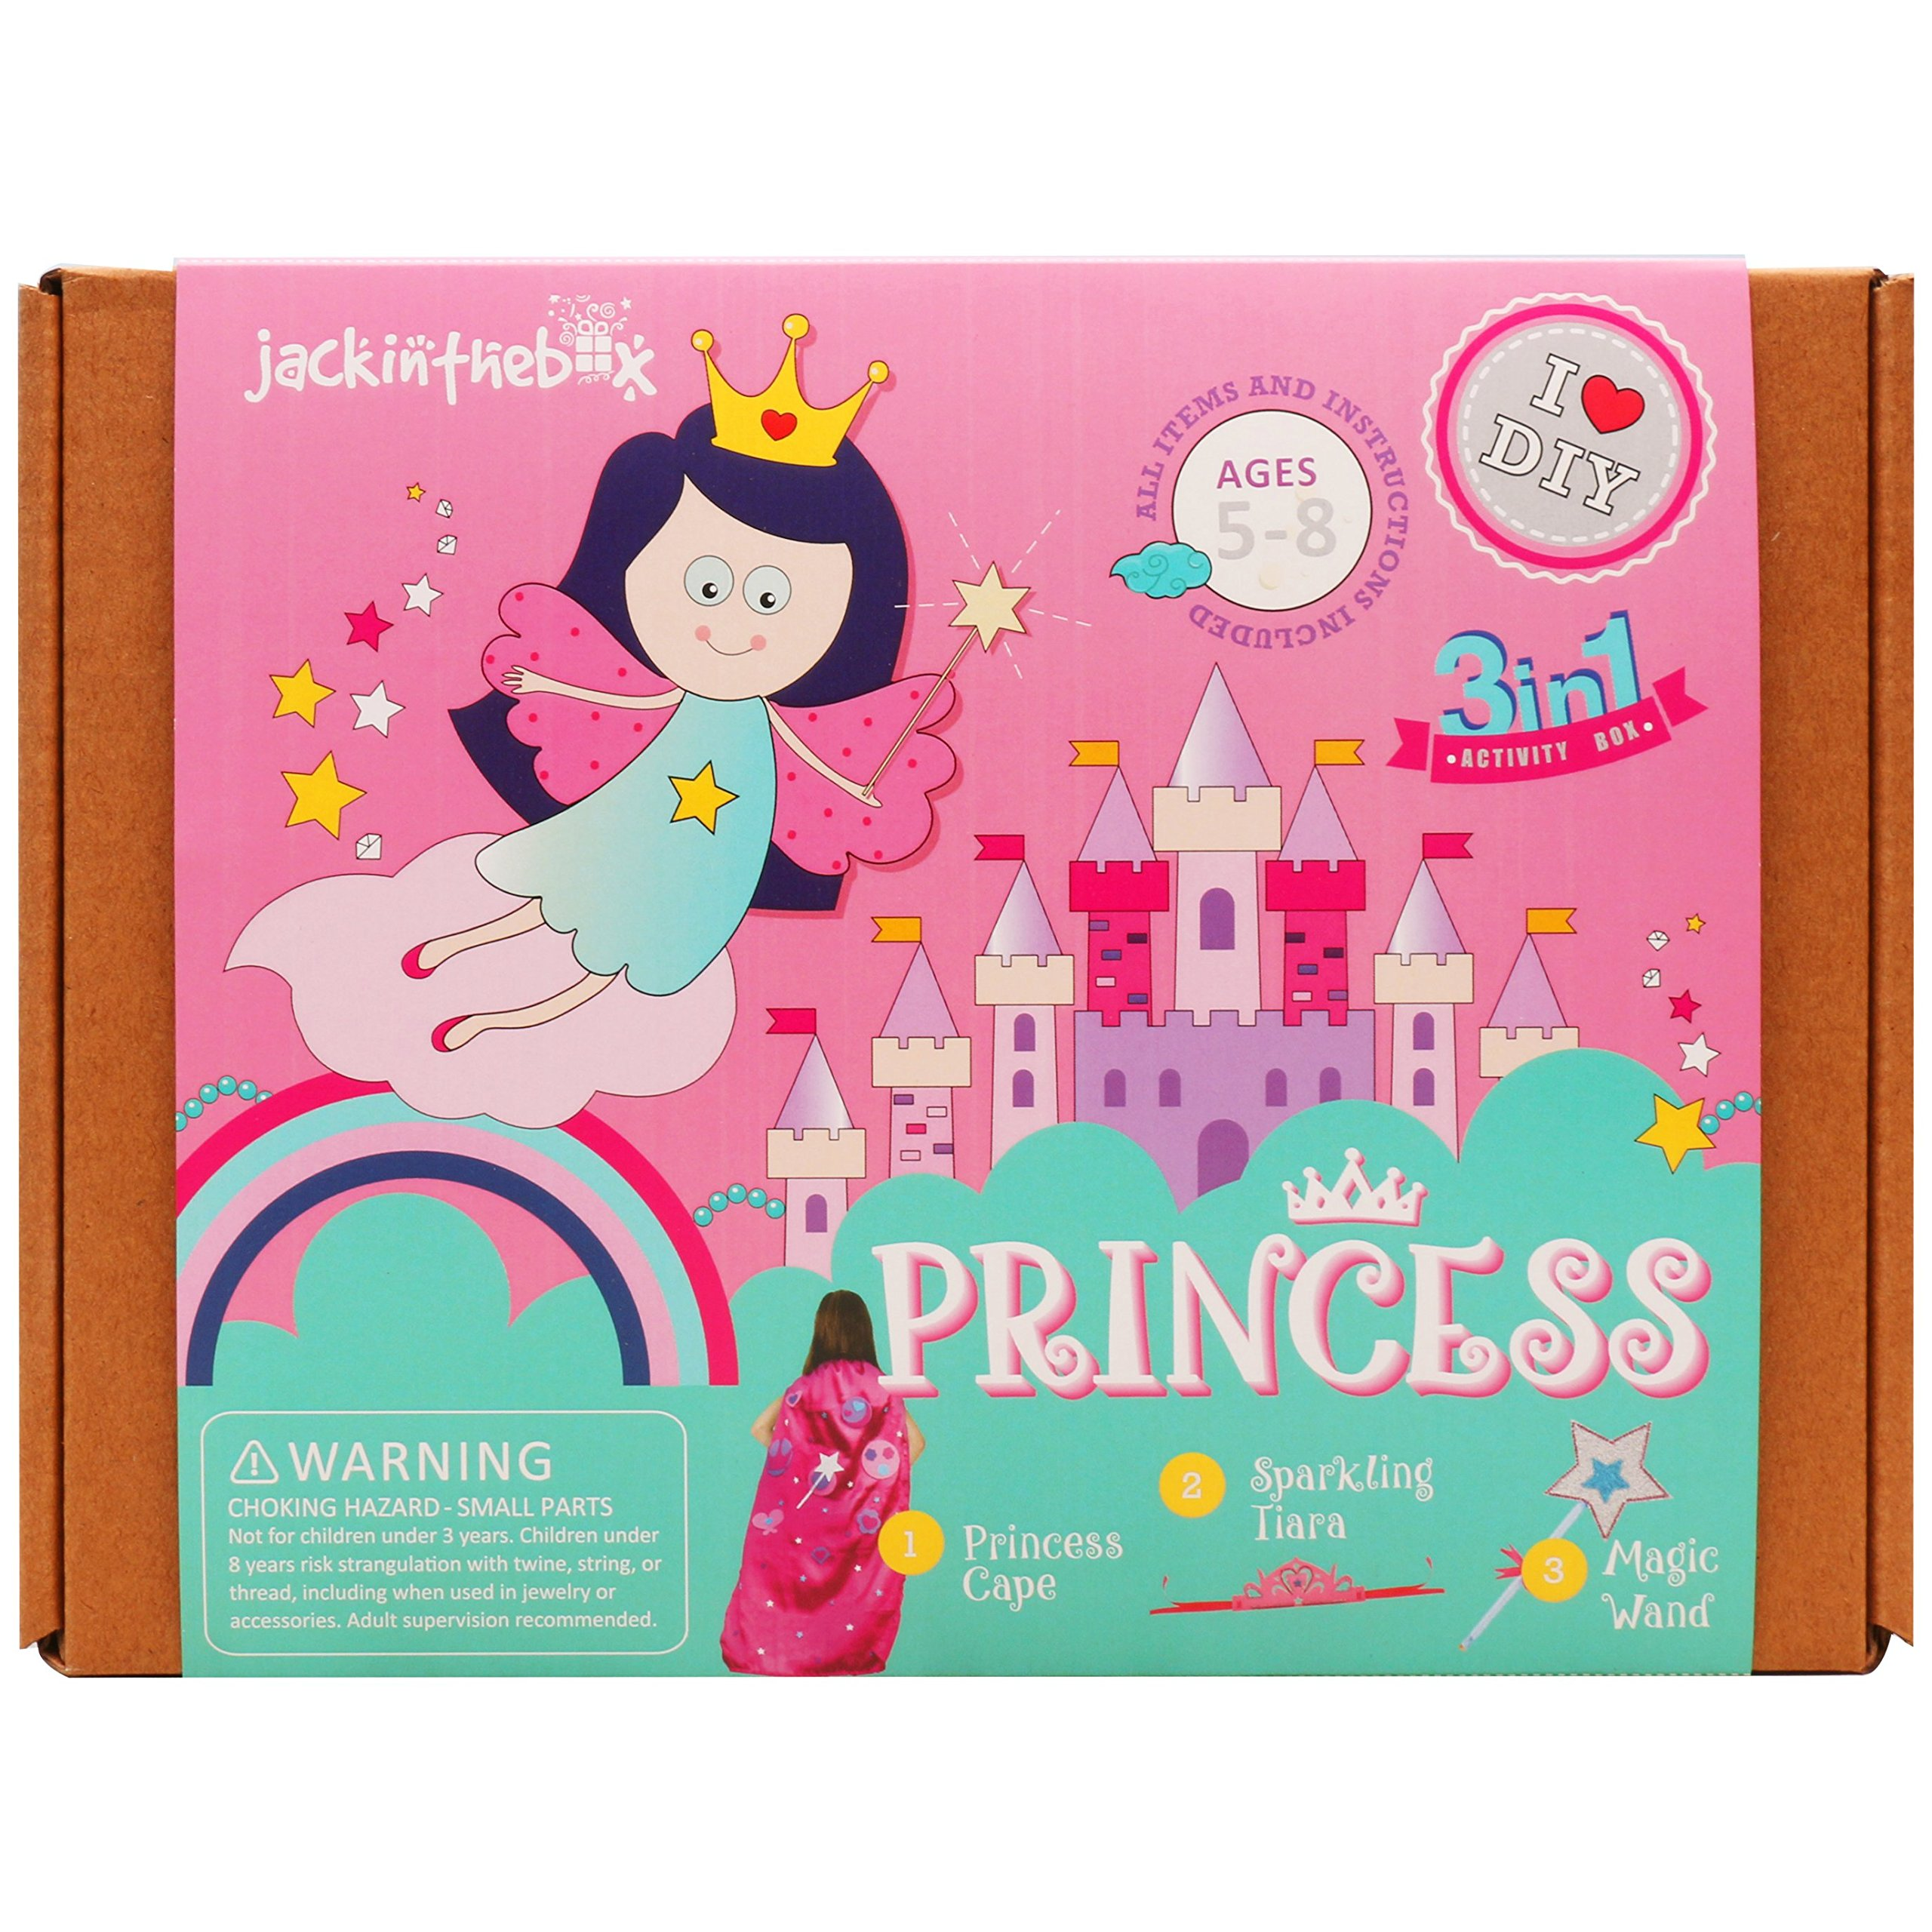 jackinthebox Art and Craft Costume Kit for Kids - Princess Themed 3 Crafts-in-1 DIY Pretend Play Gift for Girls Ages 5-8 Years